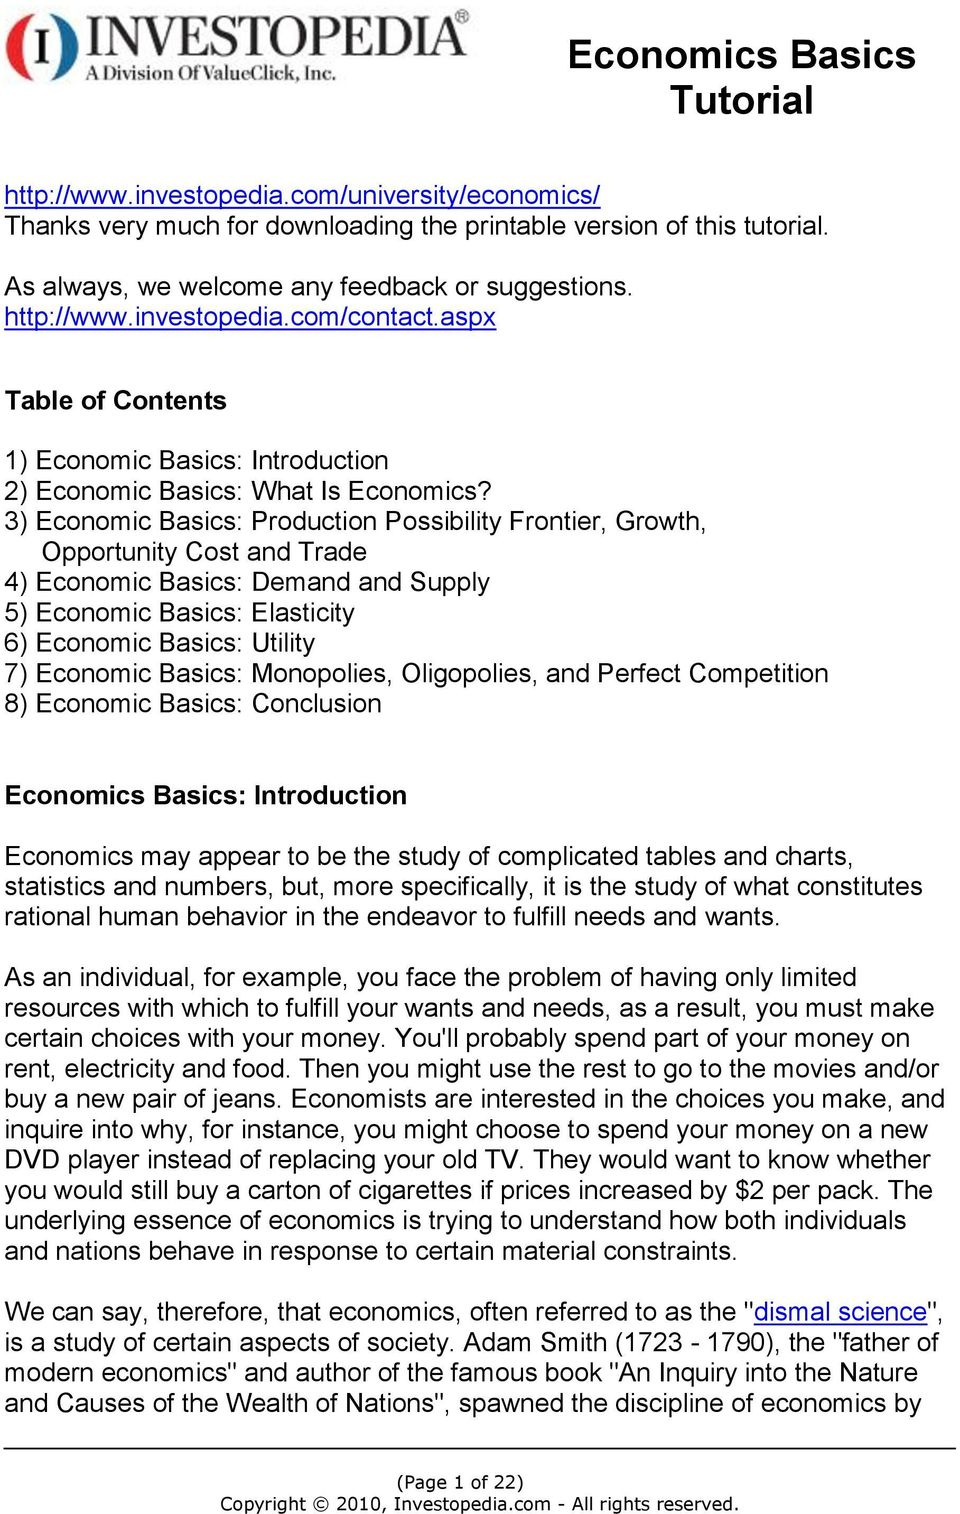 3) Economic Basics: Production Possibility Frontier, Growth, Opportunity Cost and Trade 4) Economic Basics: Demand and Supply 5) Economic Basics: Elasticity 6) Economic Basics: Utility 7) Economic